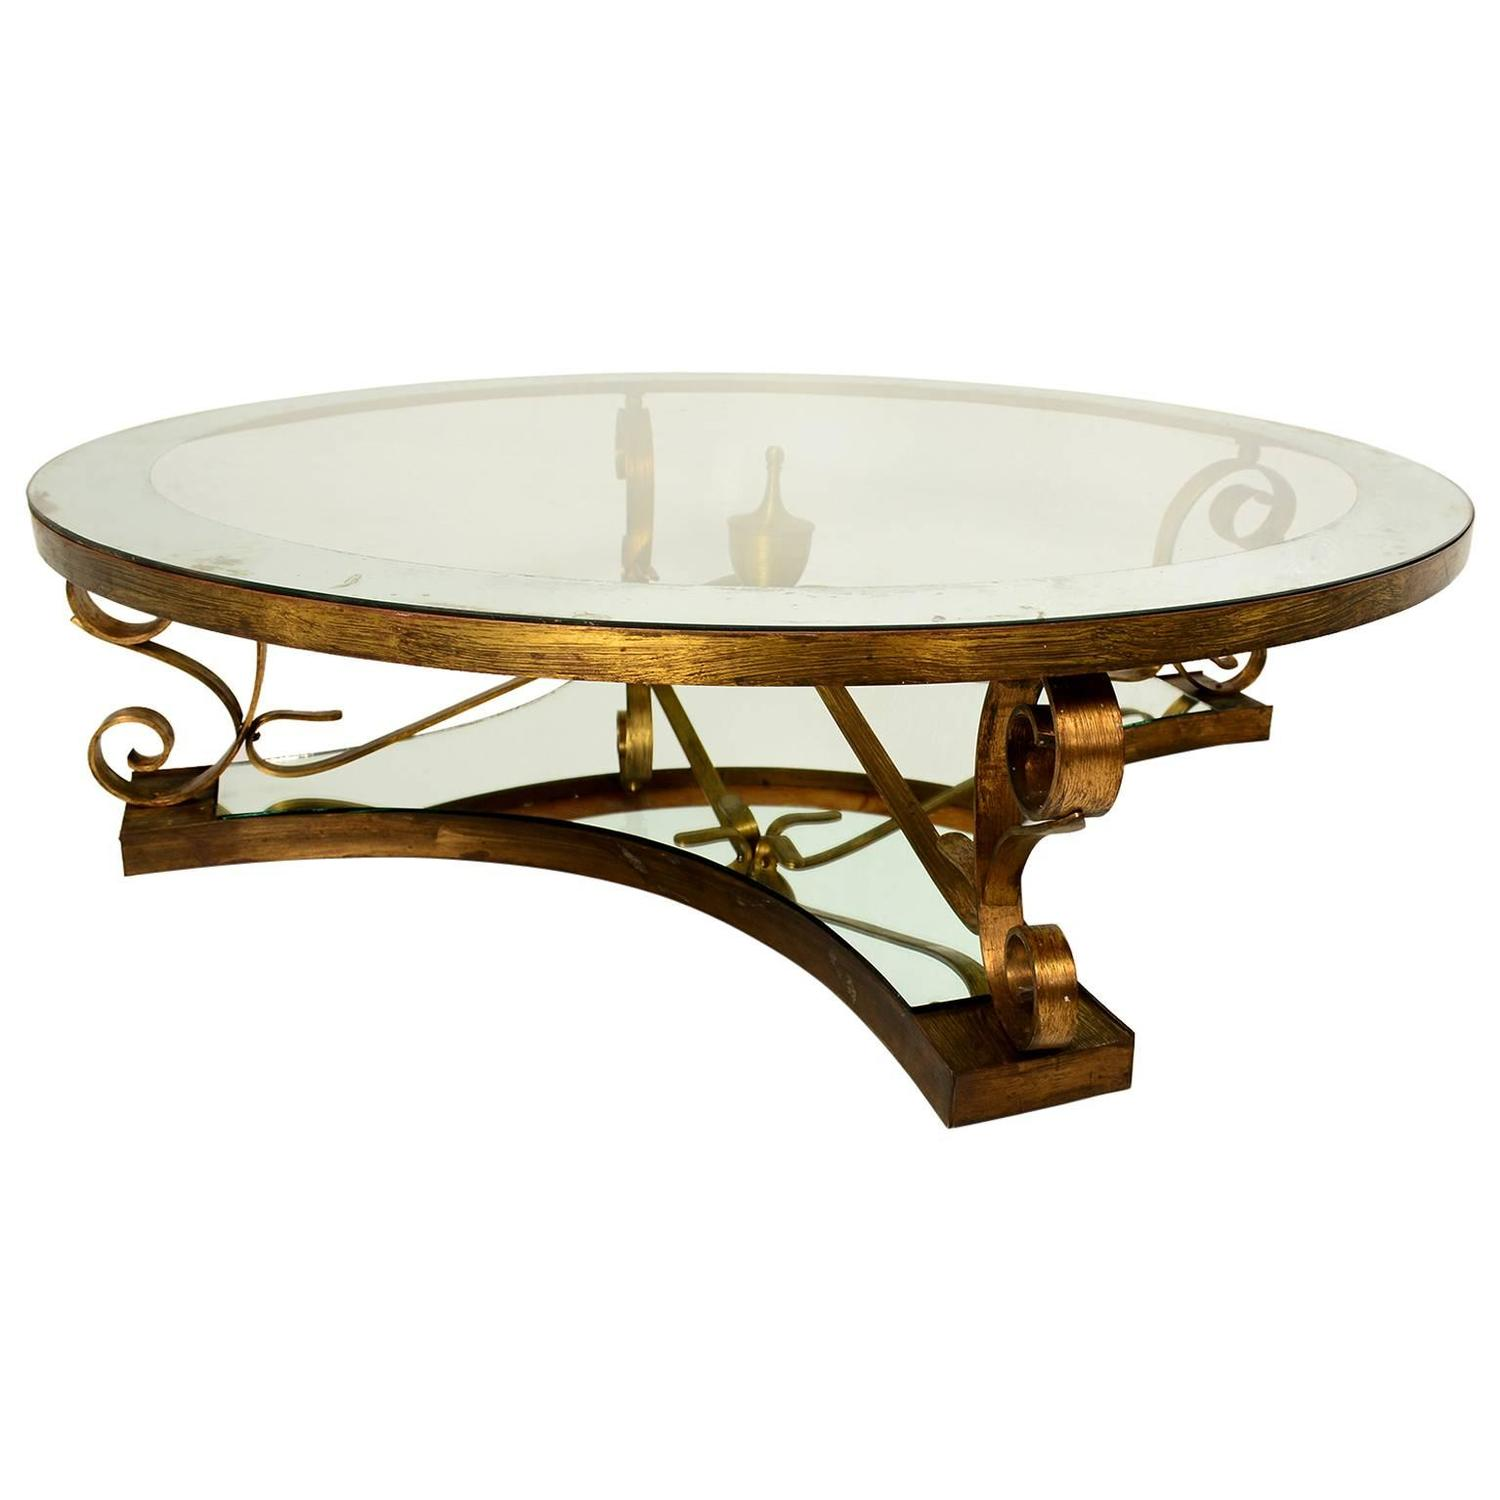 Arturo Pani Round Cocktail Table For Sale At 1stdibs